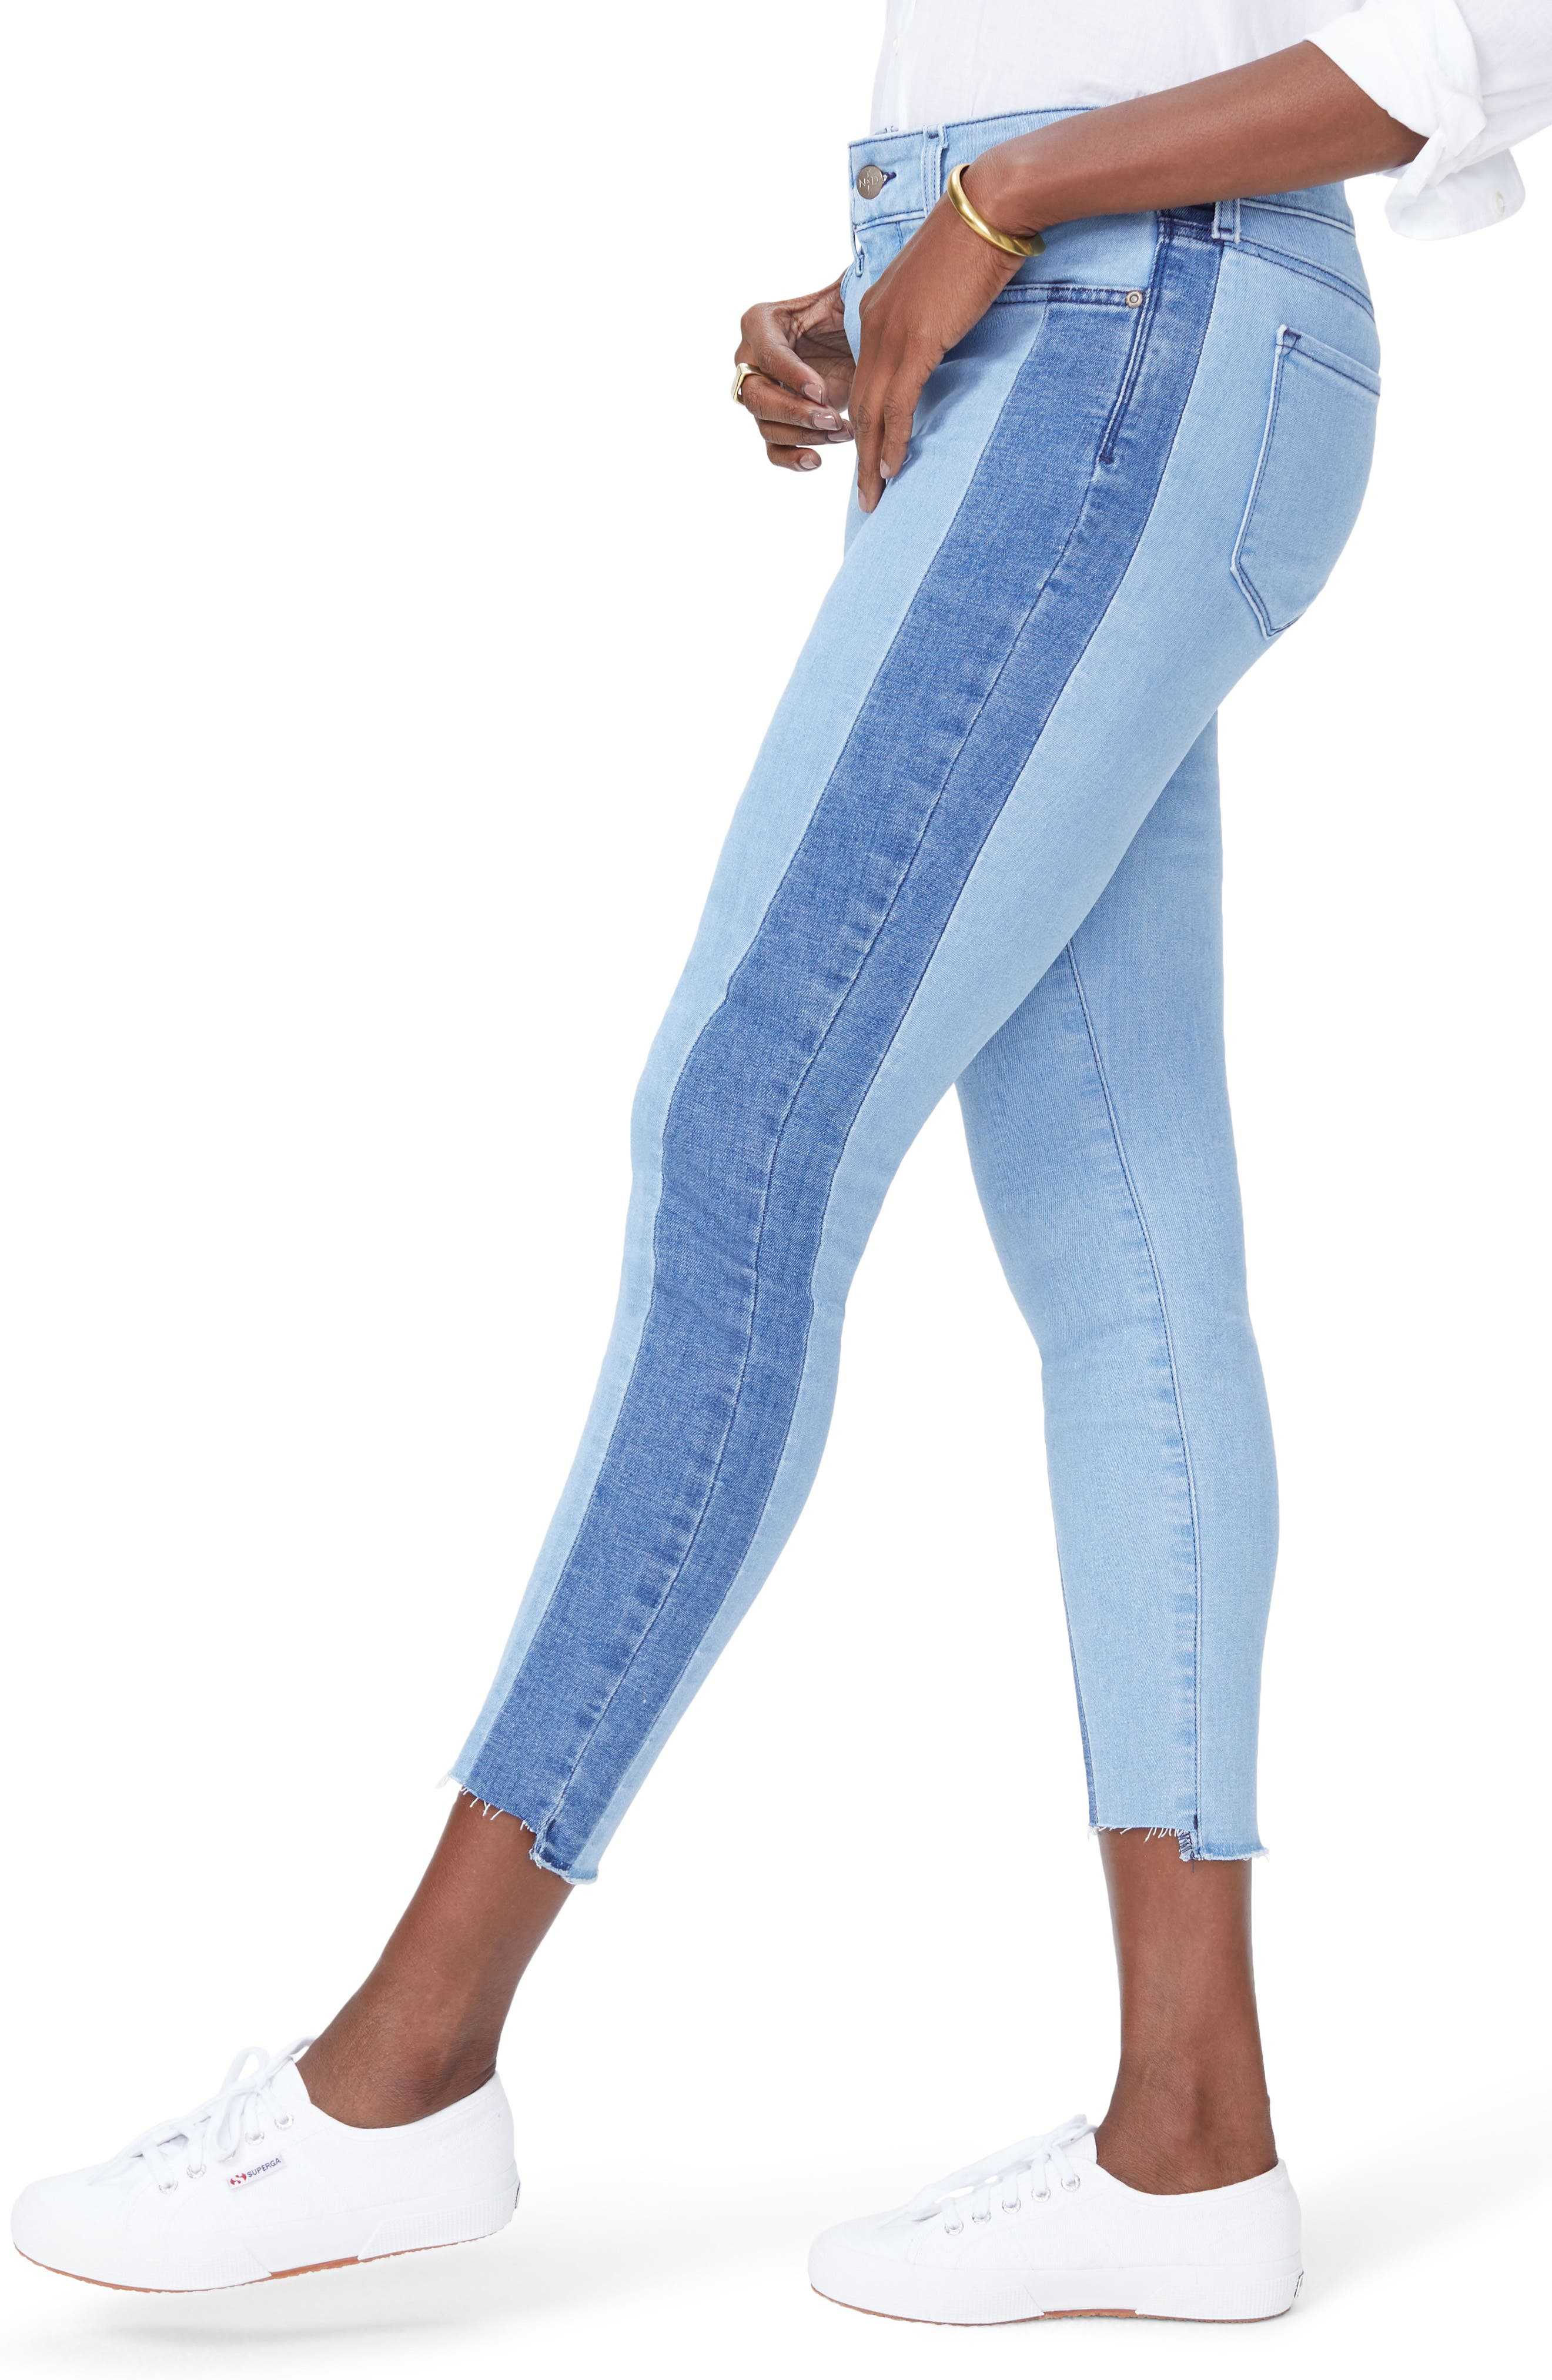 Ami Stretch Ankle Skinny Contrast Step Hem Jeans,                             Alternate thumbnail 4, color,                             Blissful